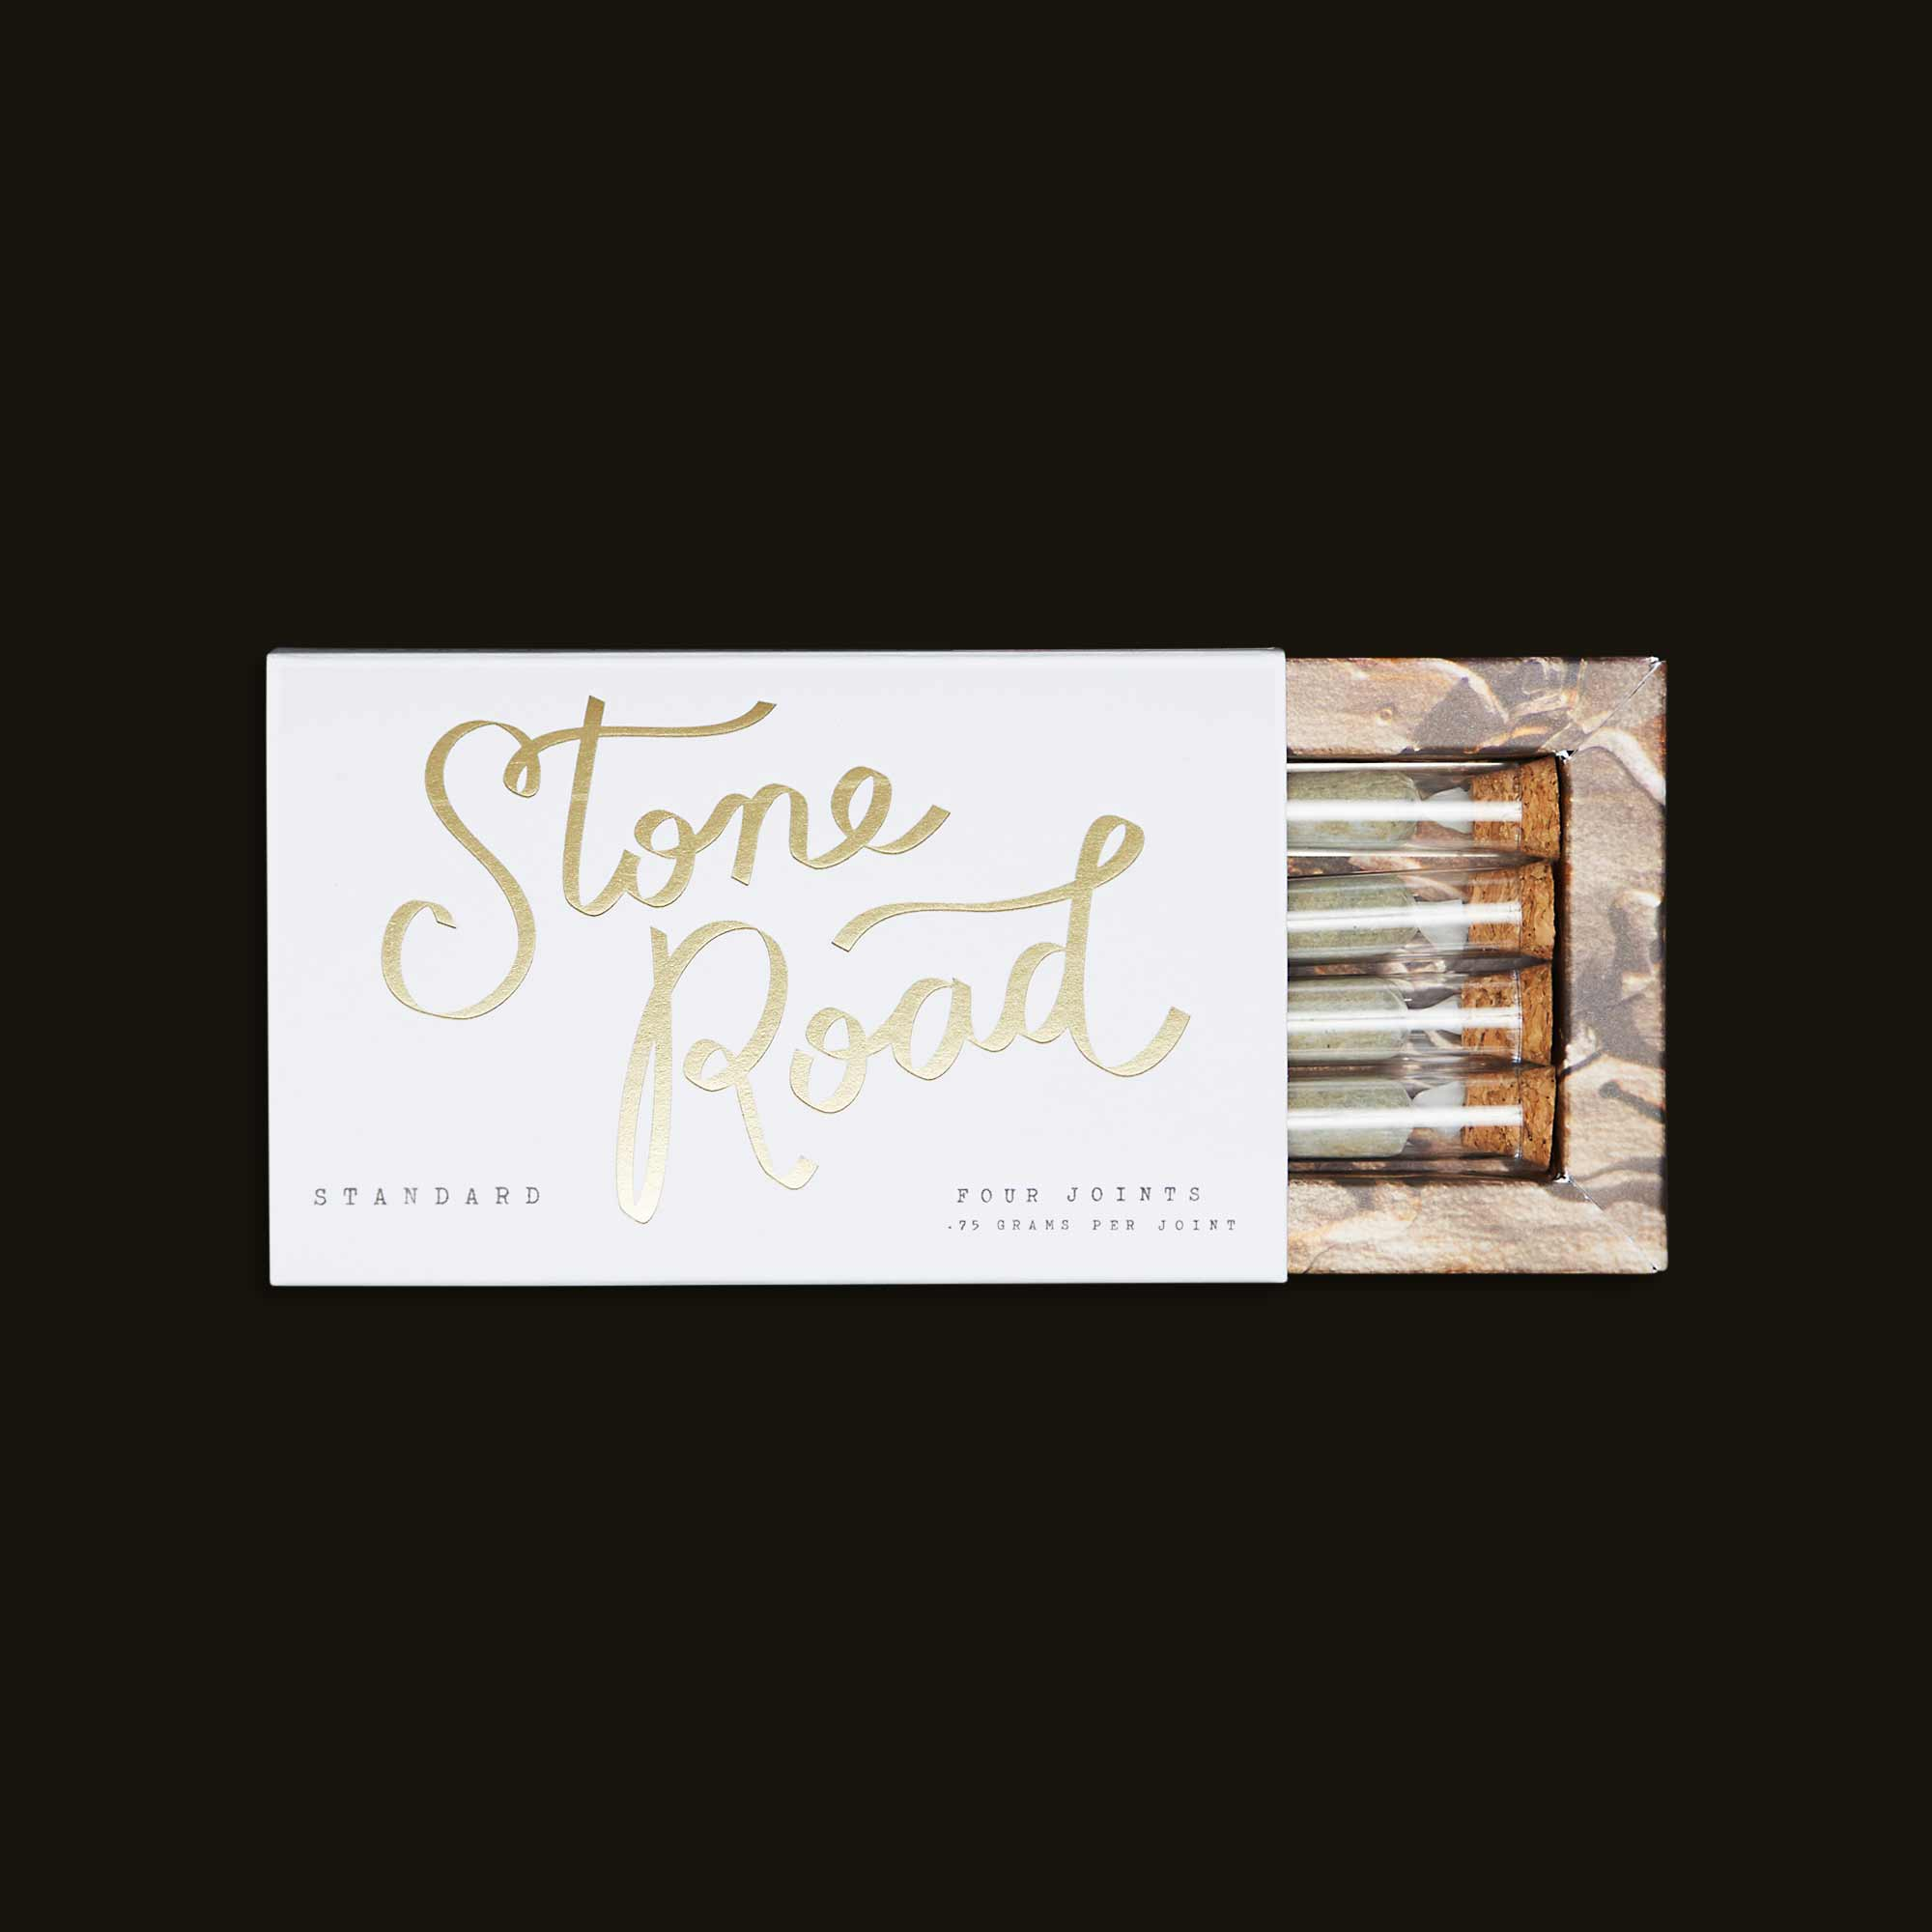 Stone Road Standard - Four 0.75g joints